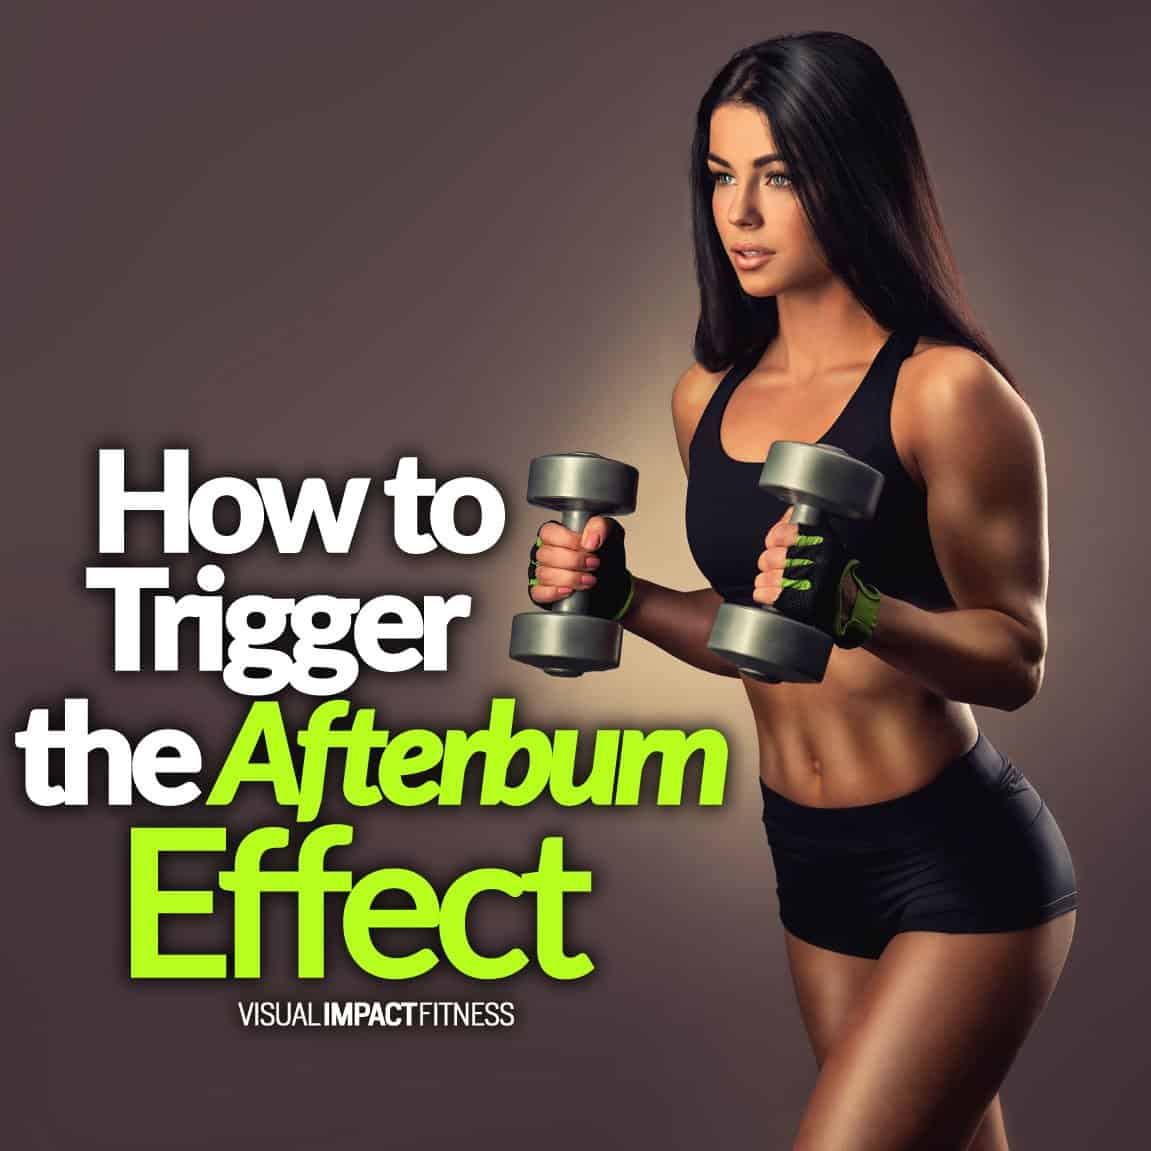 How To Trigger The Afterburn Effect